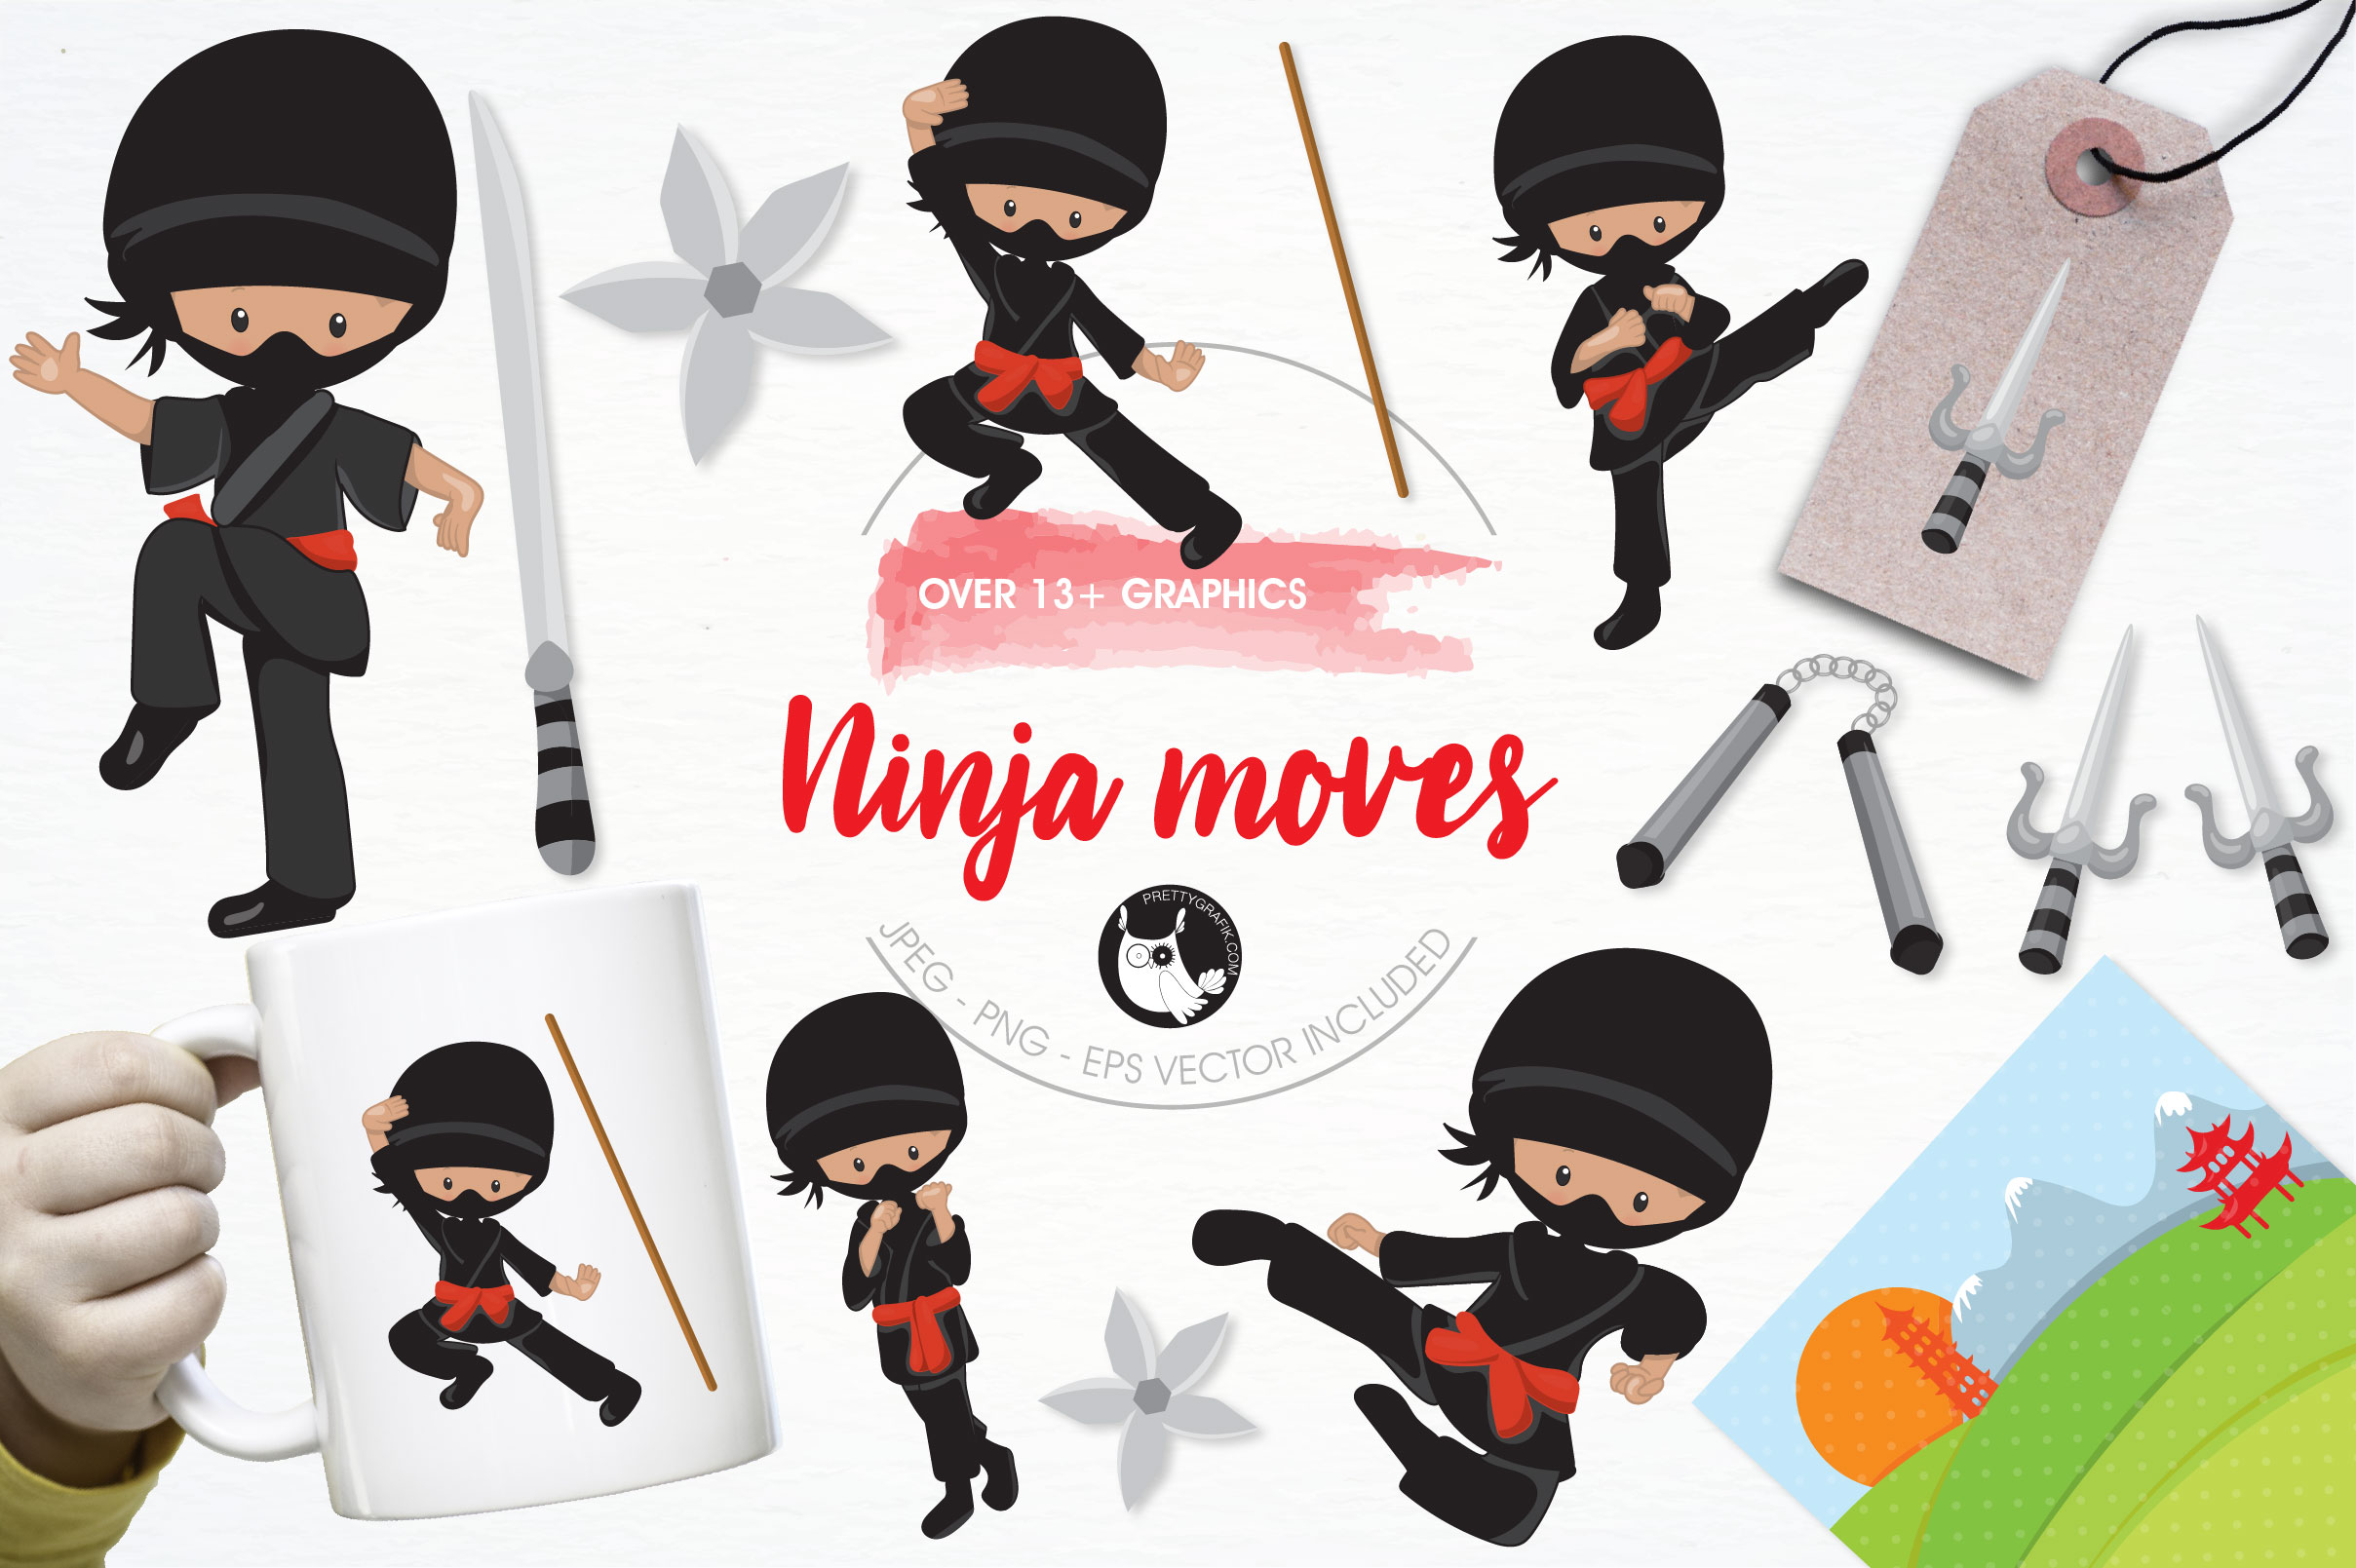 Download Free Ninja Moves Graphic By Prettygrafik Creative Fabrica for Cricut Explore, Silhouette and other cutting machines.